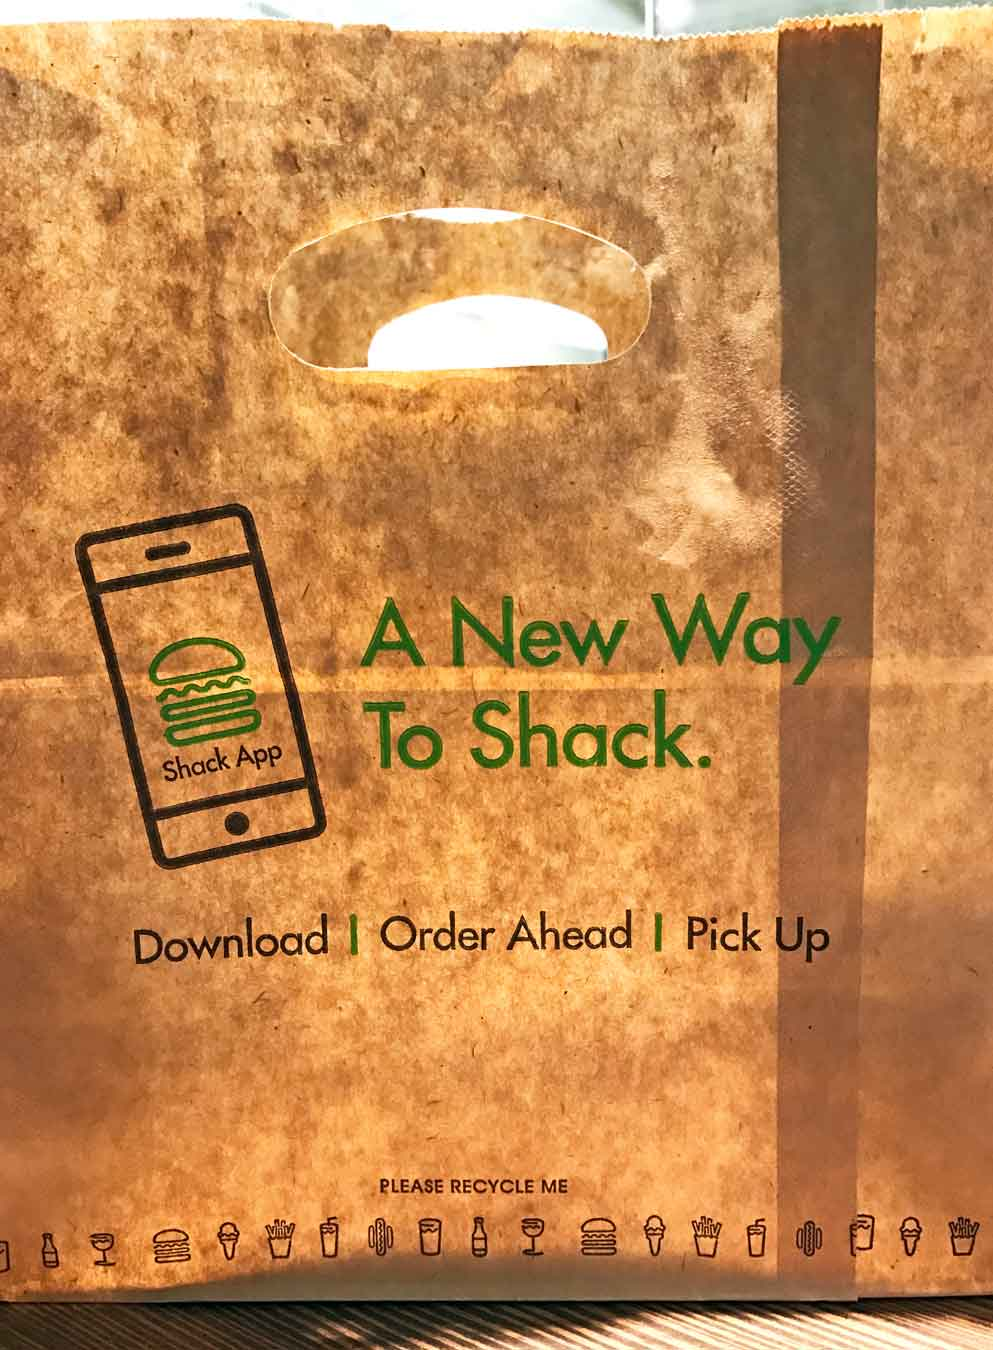 Shake Shack App Lets You Order Food On Your Phone & Receive A Text When It's Ready to Pick Up. /// Shake Shack Detroit Might Be Your New Favorite Burger Spot /// - From sandwiches, fries, and shakes to local flavors and an awesome location, learn why long-time fans and newbies alike are sure to love the new Shake Shack in Downtown Detroit, Michigan. /// via Wading in Big Shoes